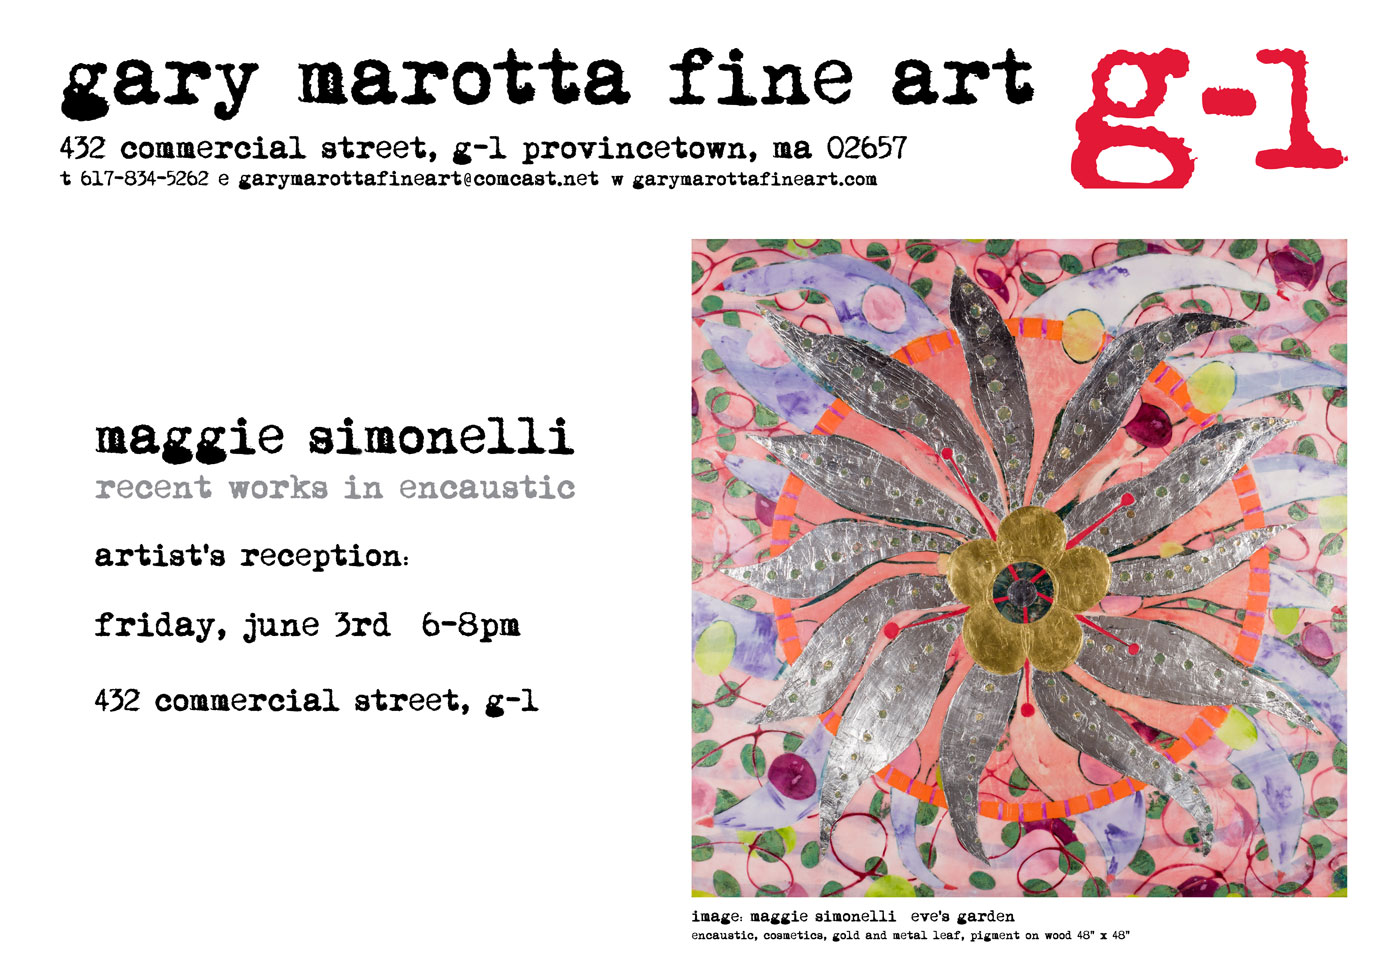 Invitation for Maggie Simonelli recent encaustic works at Gary Marotta Fine Art